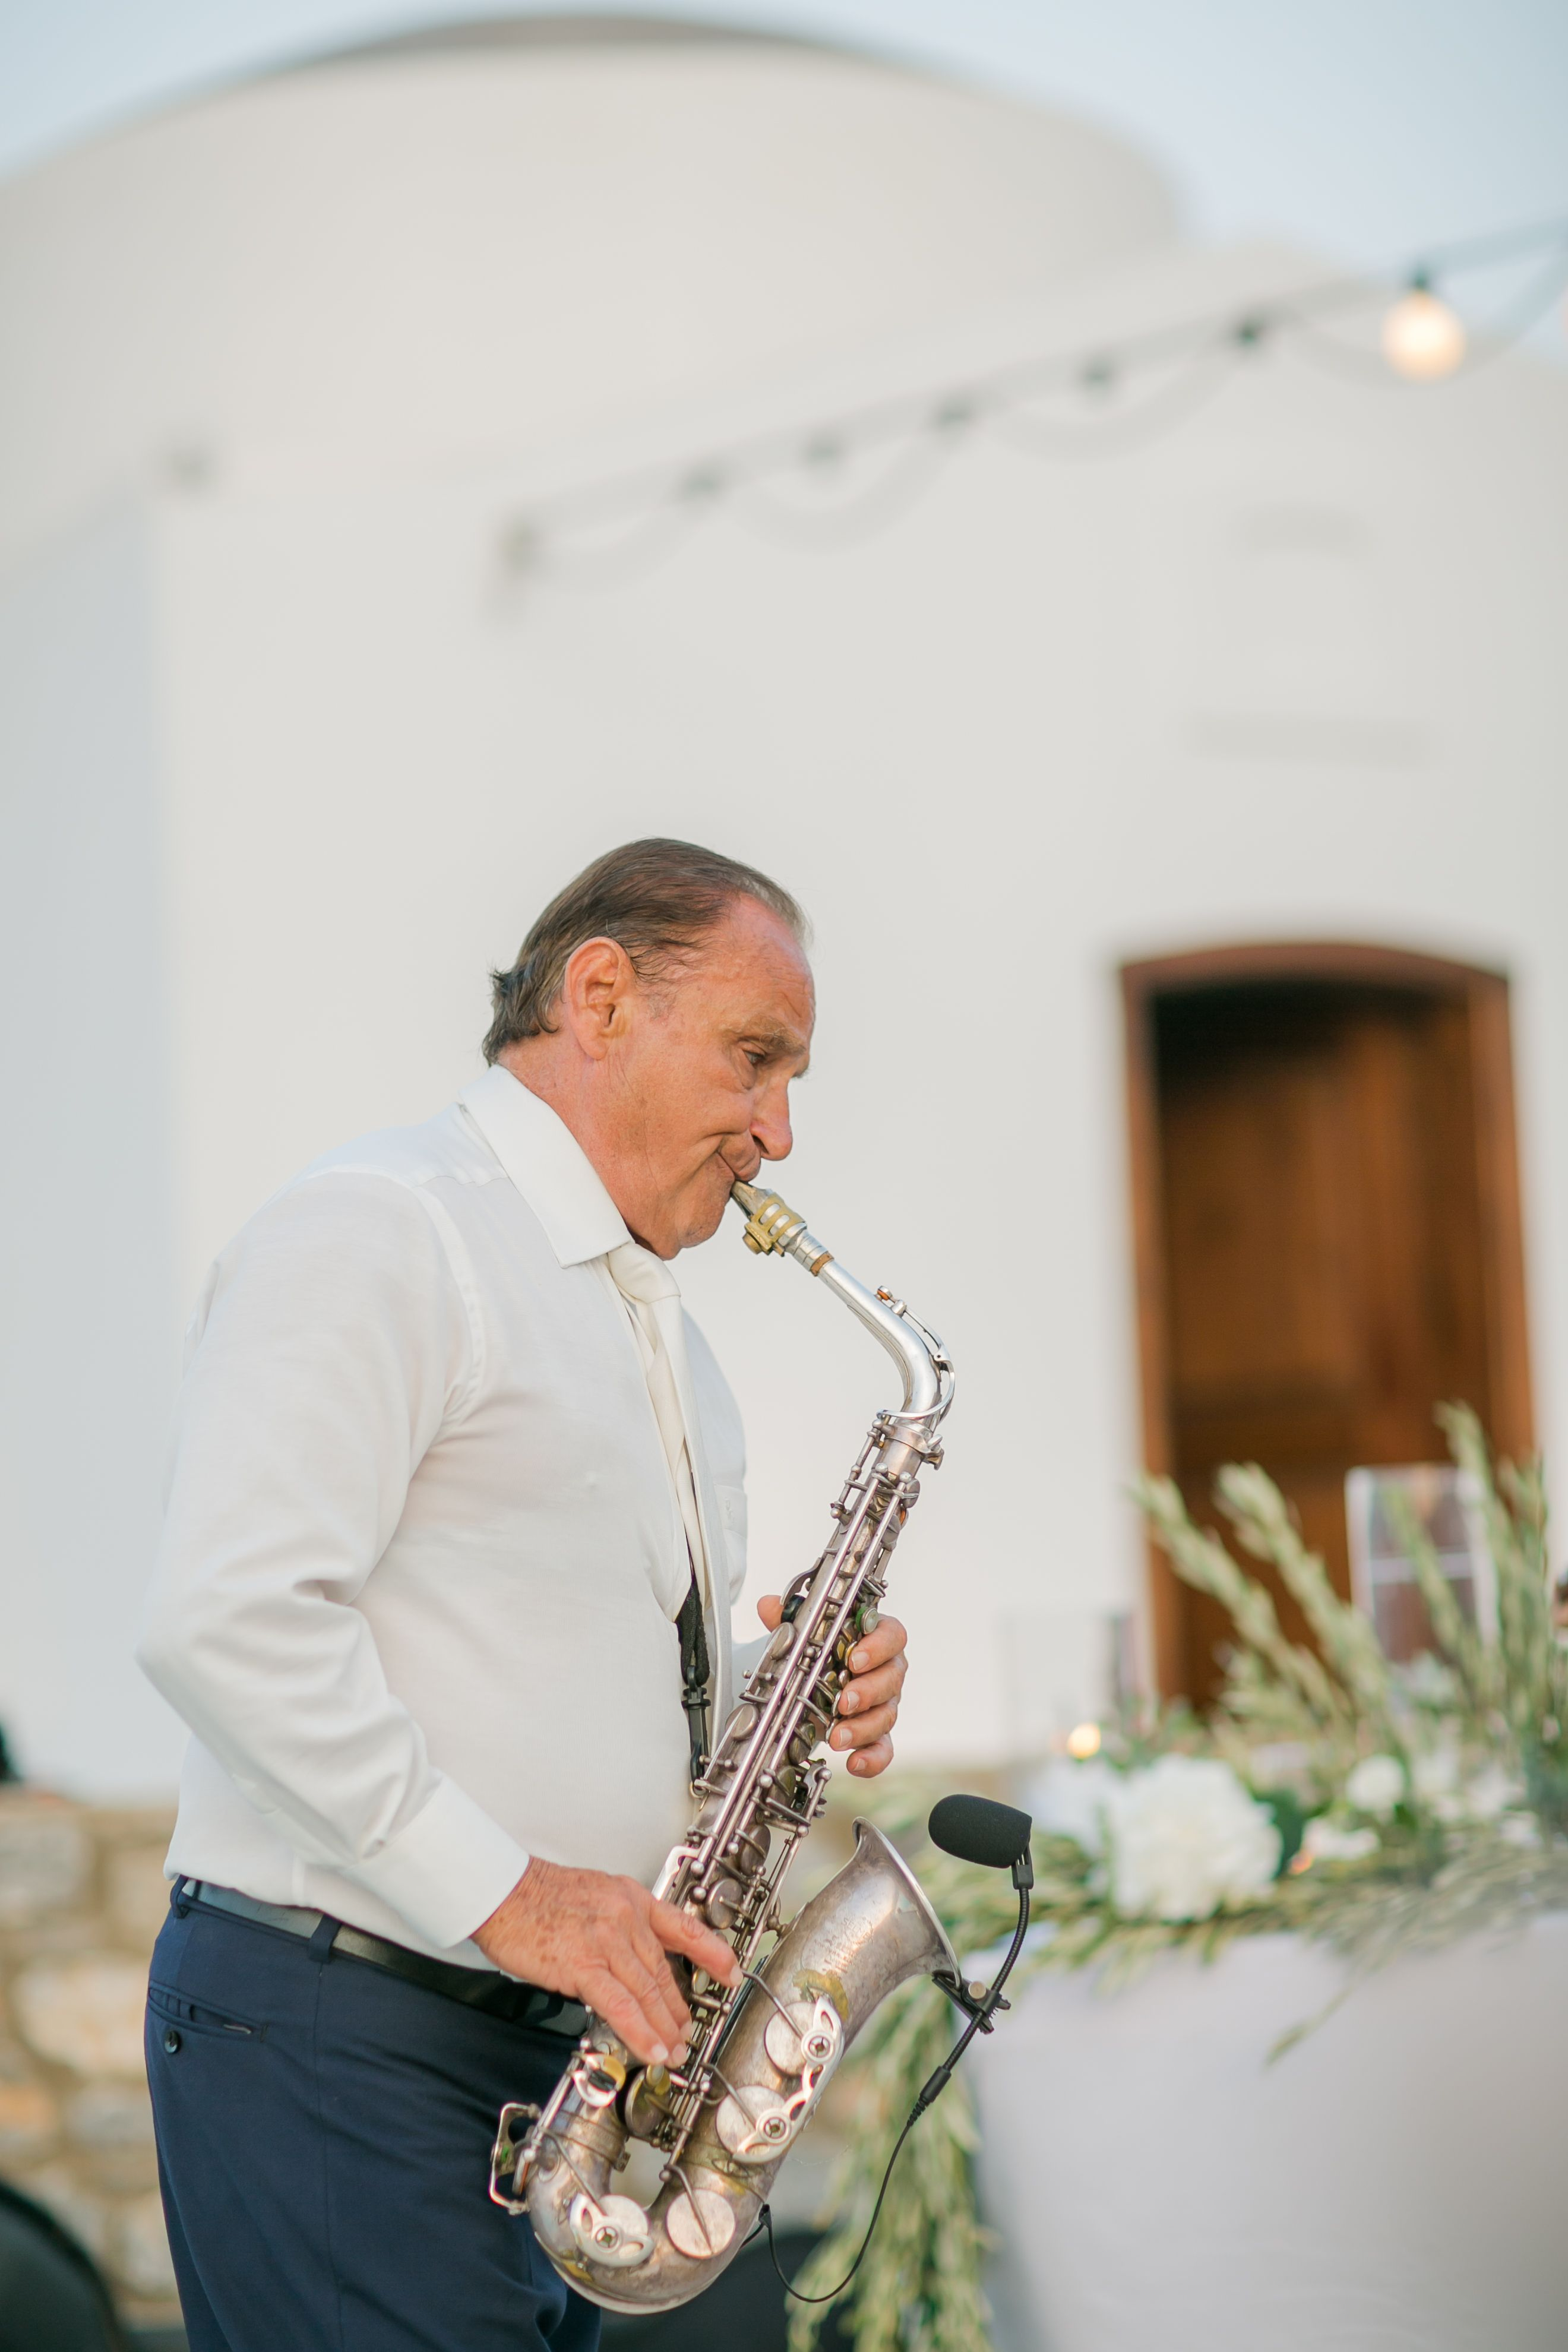 Saxophone Player Saxophonist Wedding Music Jazz Time Greek